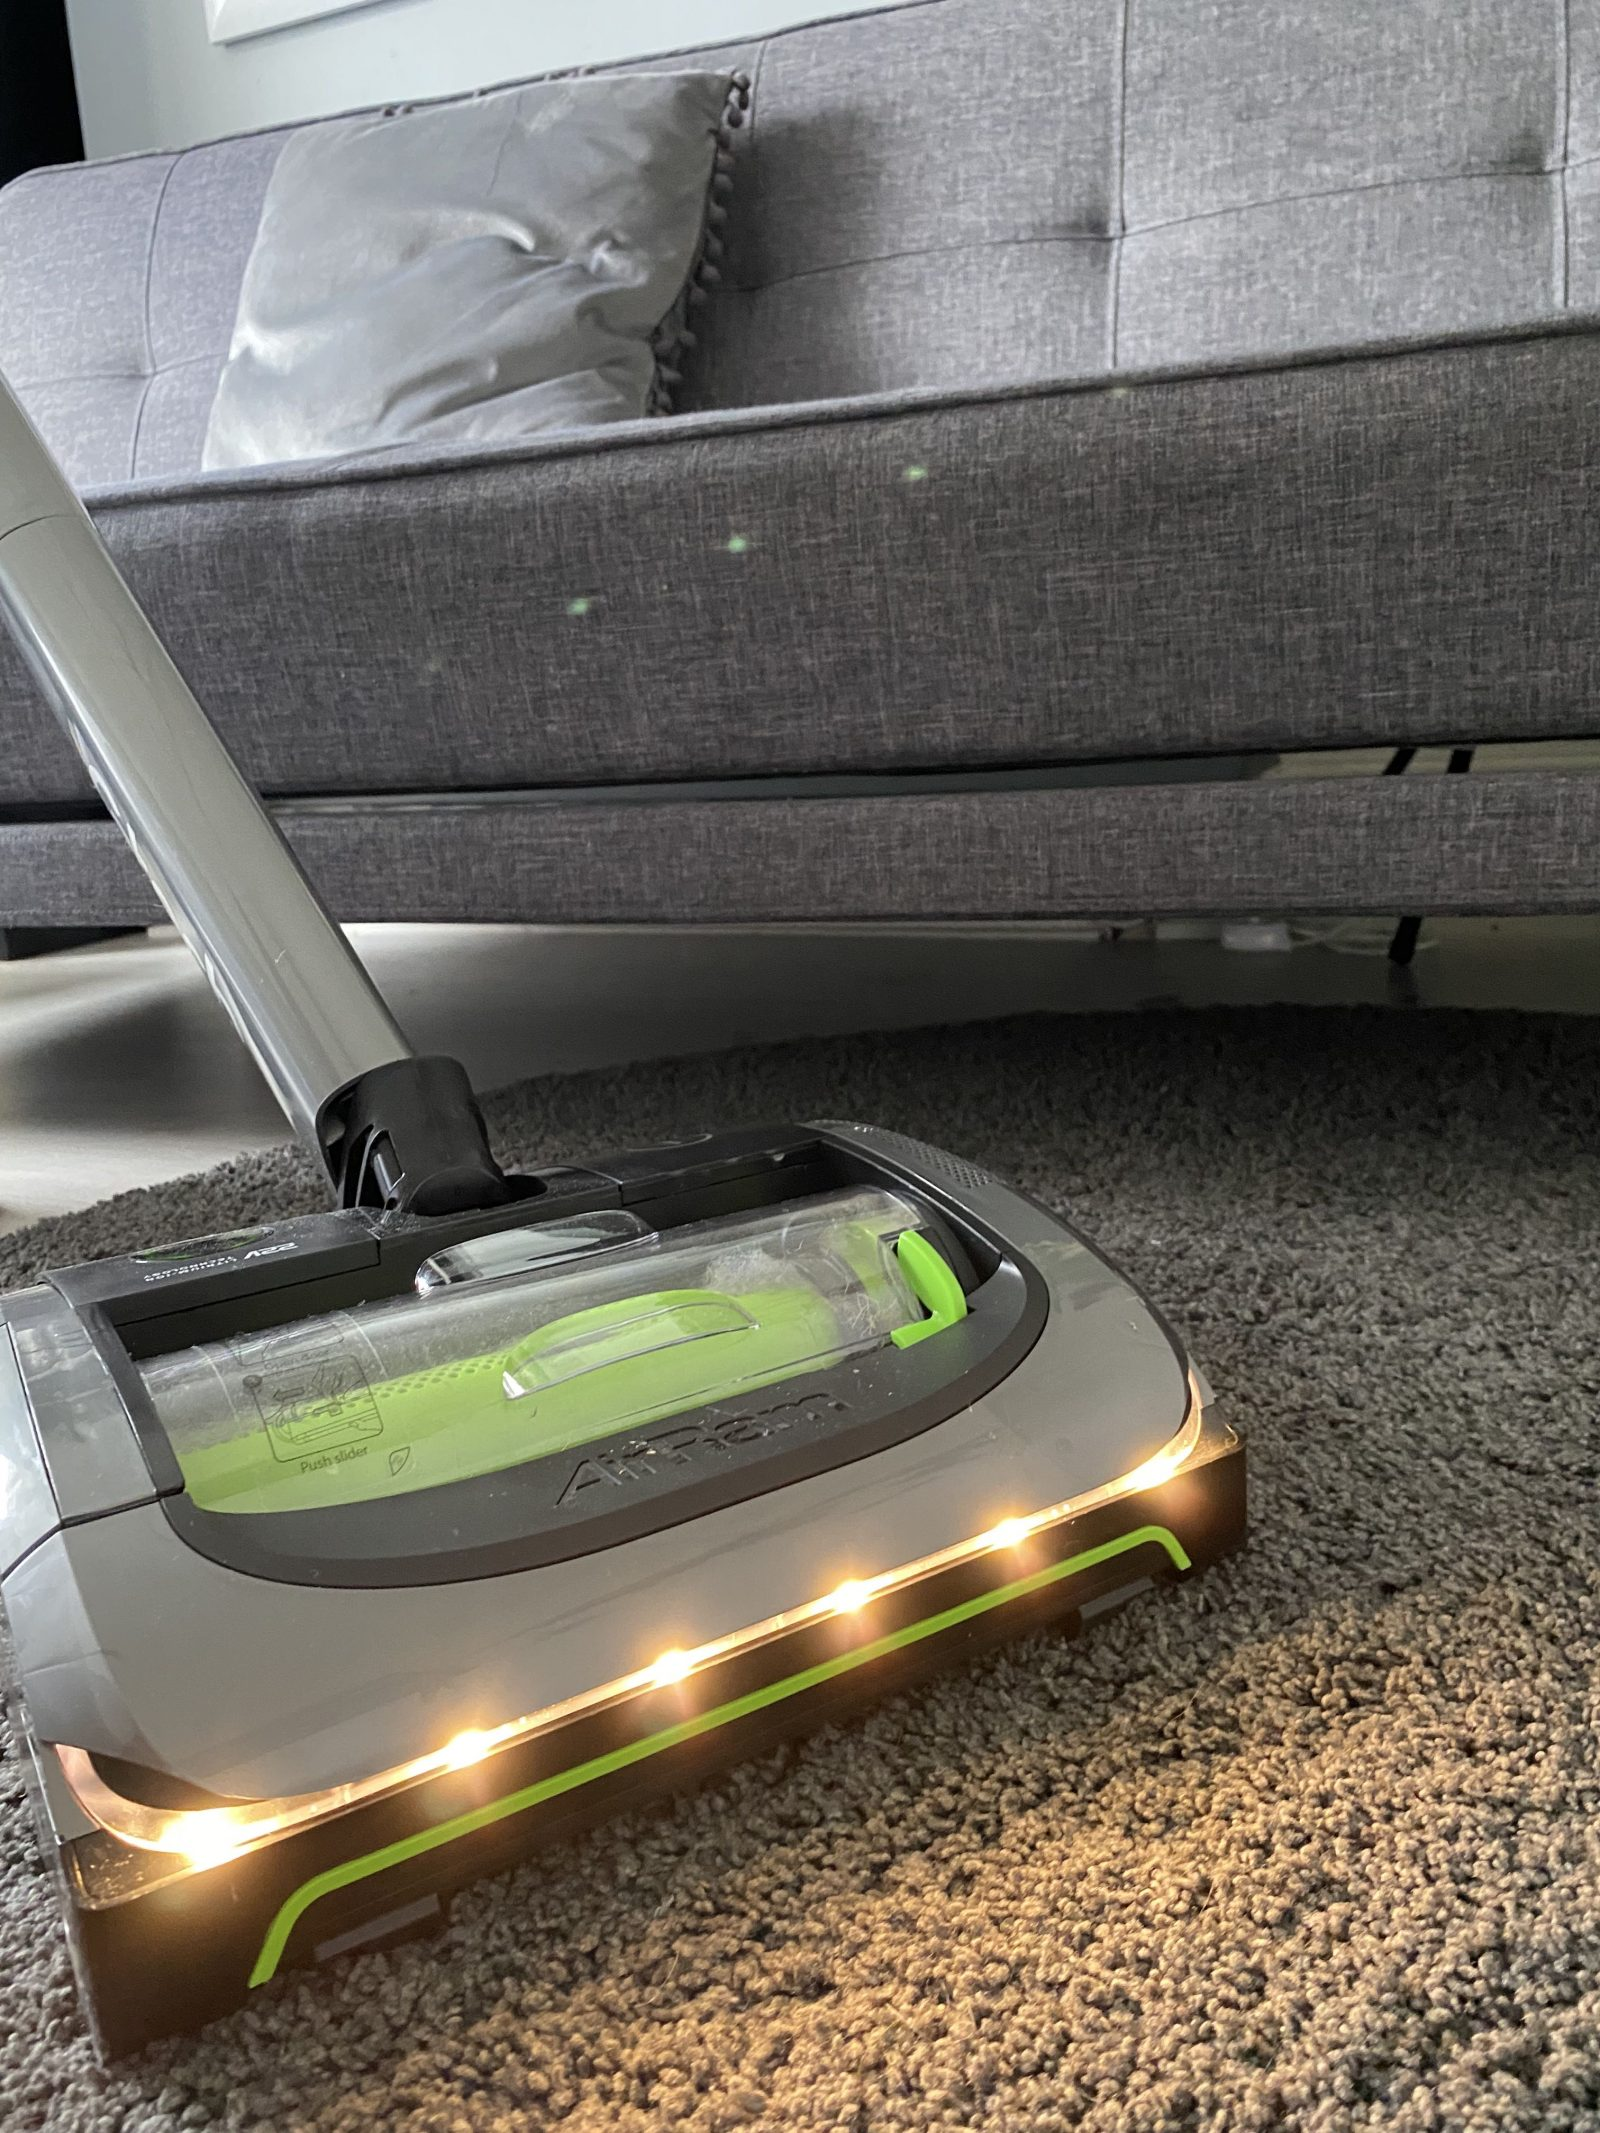 5 Vacuum Cleaners Aimed At Families Reviewed, IMG 4583 1600x2133%, daily-dad%